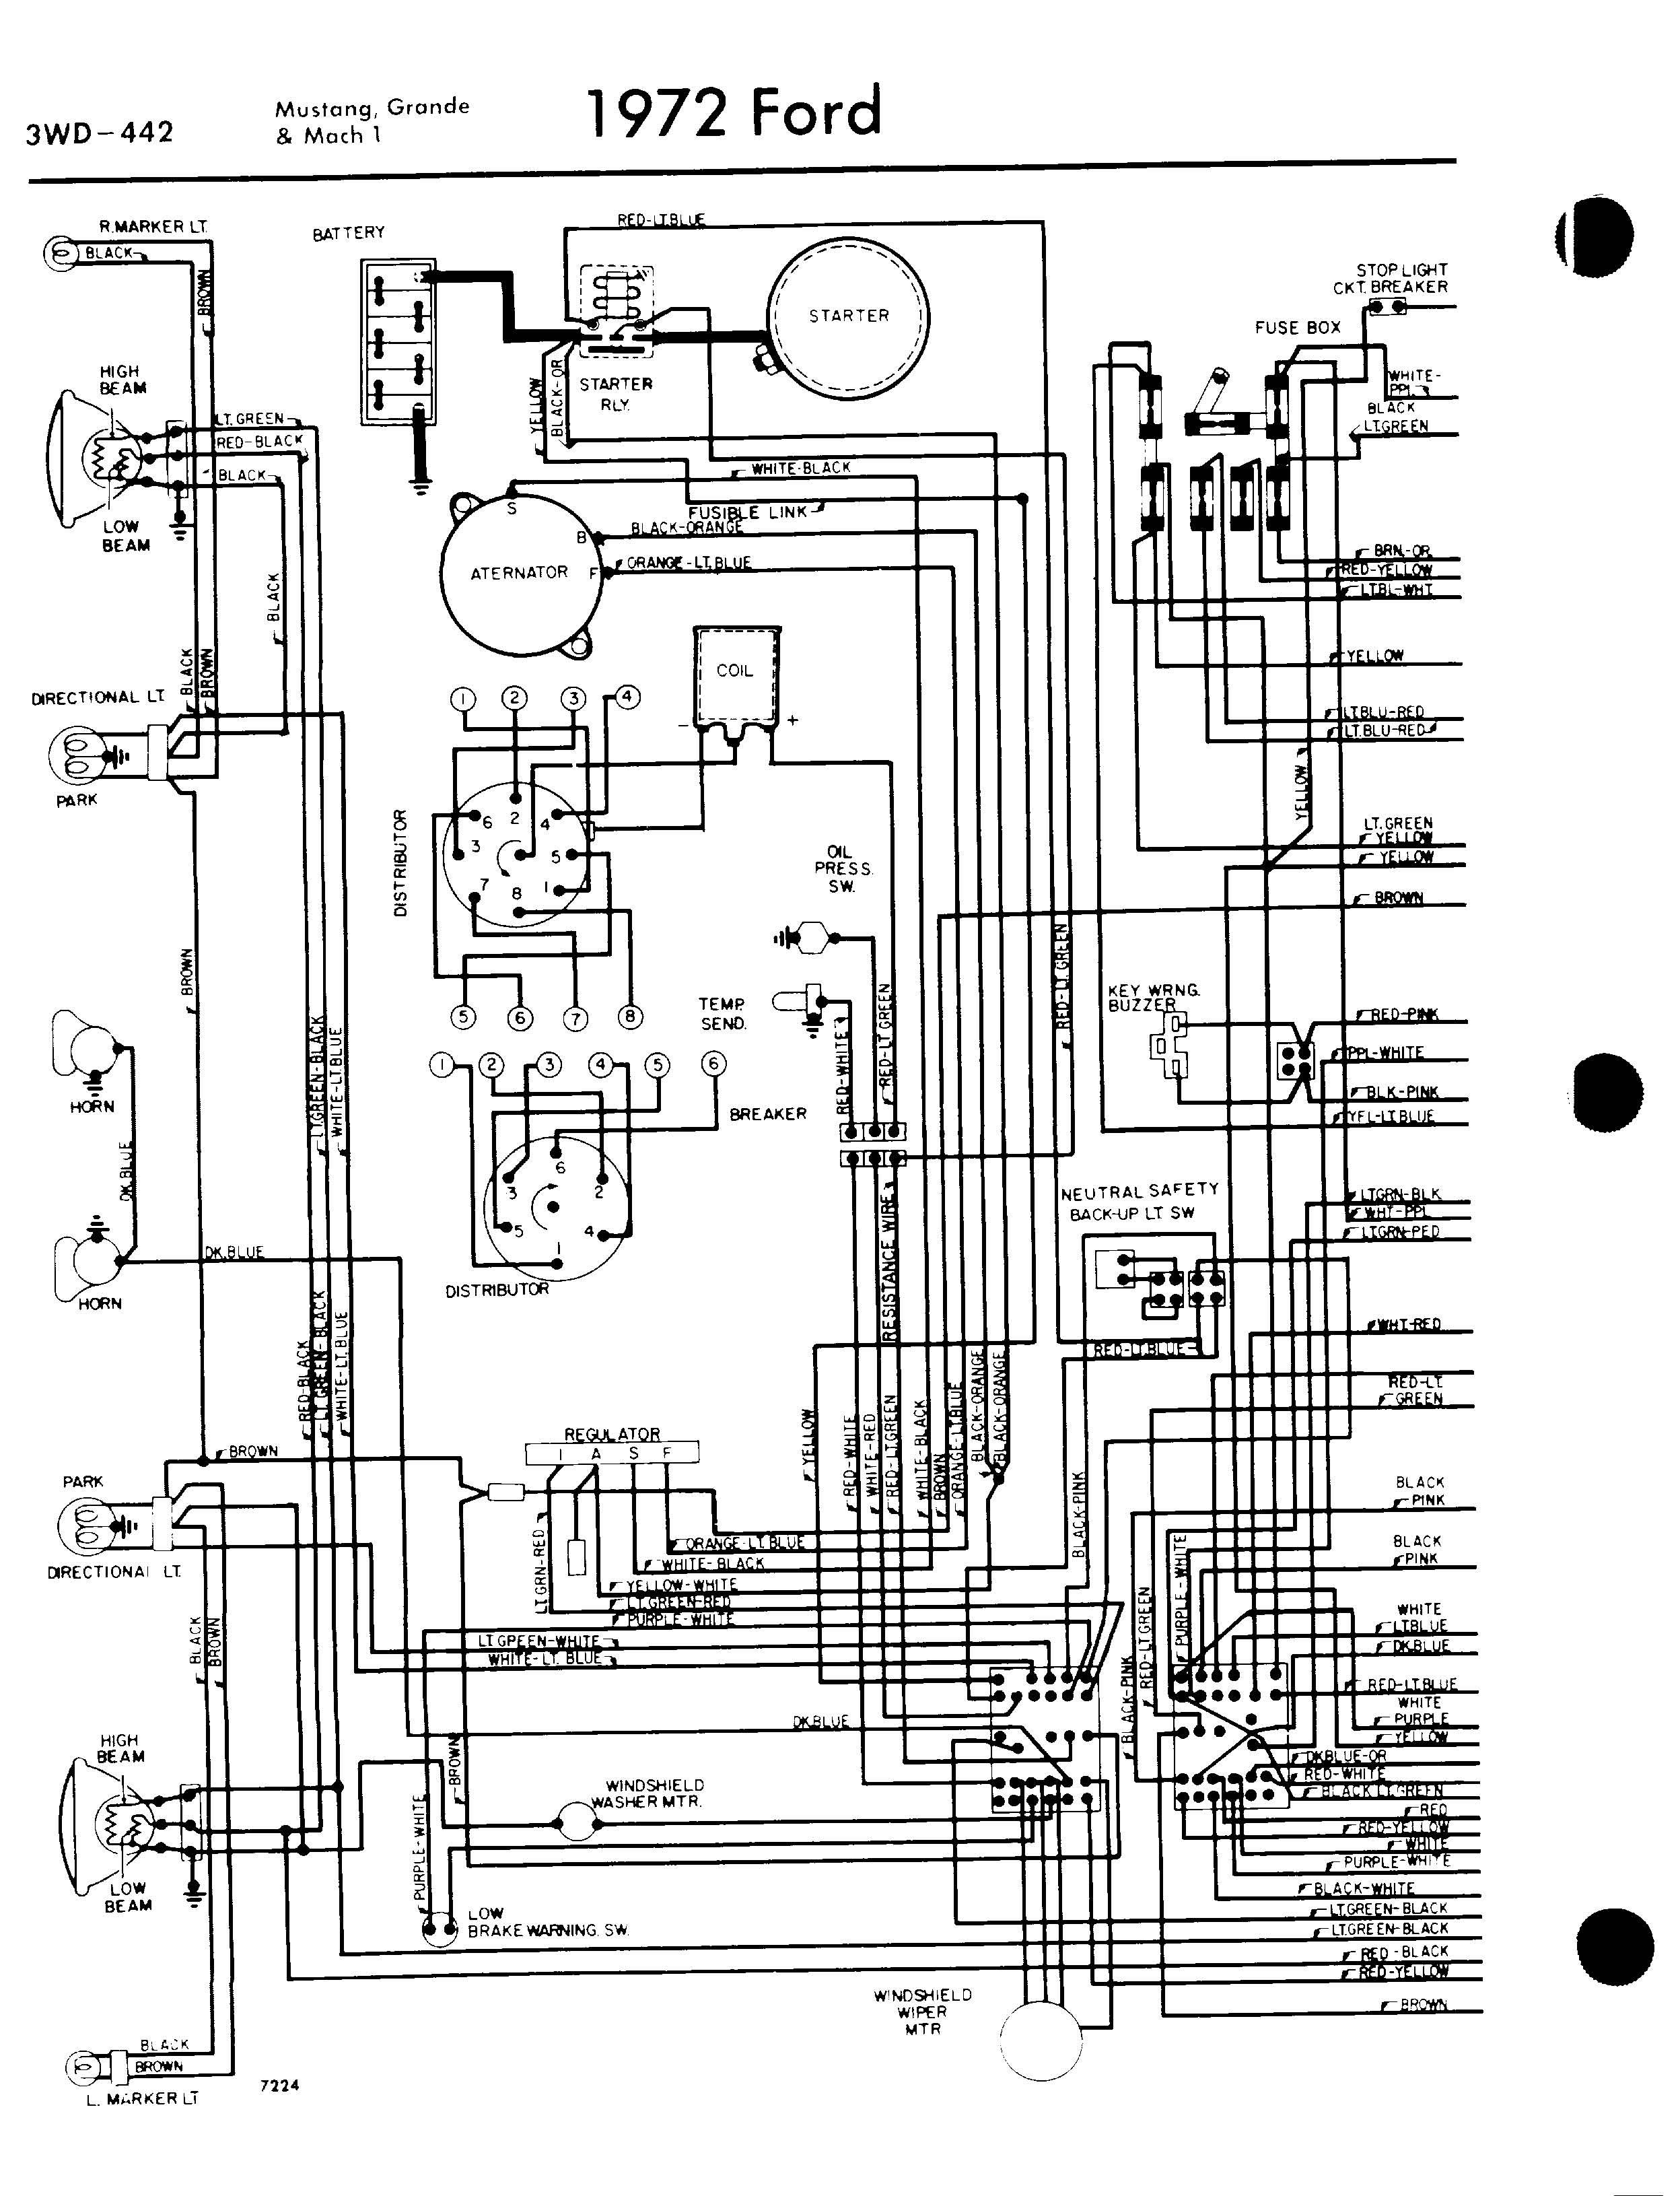 71af7a58e095e6a7716b32f1b23e8bd2 72 mach1 alternator wire harness diagram yahoo search results F100 Wiring Diagram at crackthecode.co